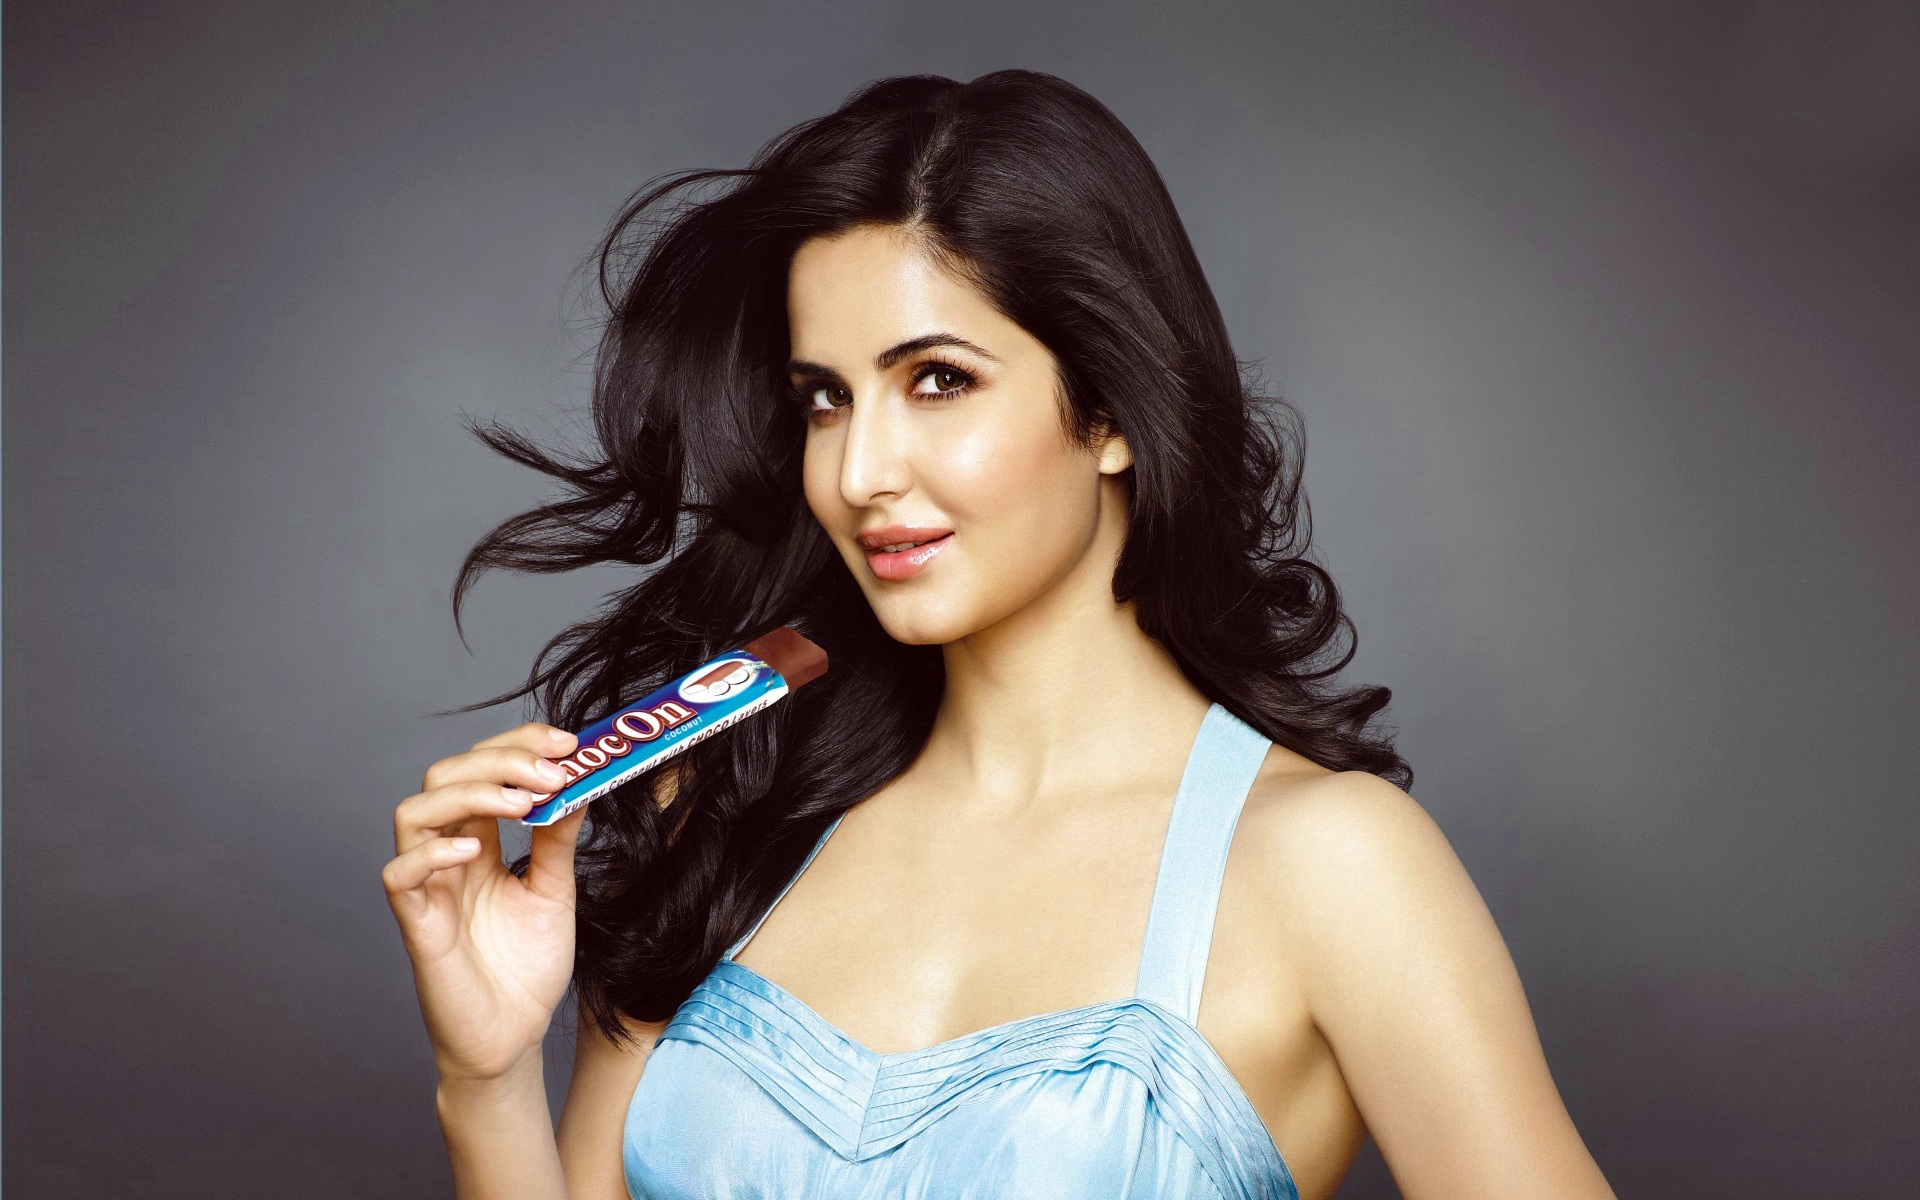 94 Katrina Kaif 2018 Wallpapers On Wallpapersafari